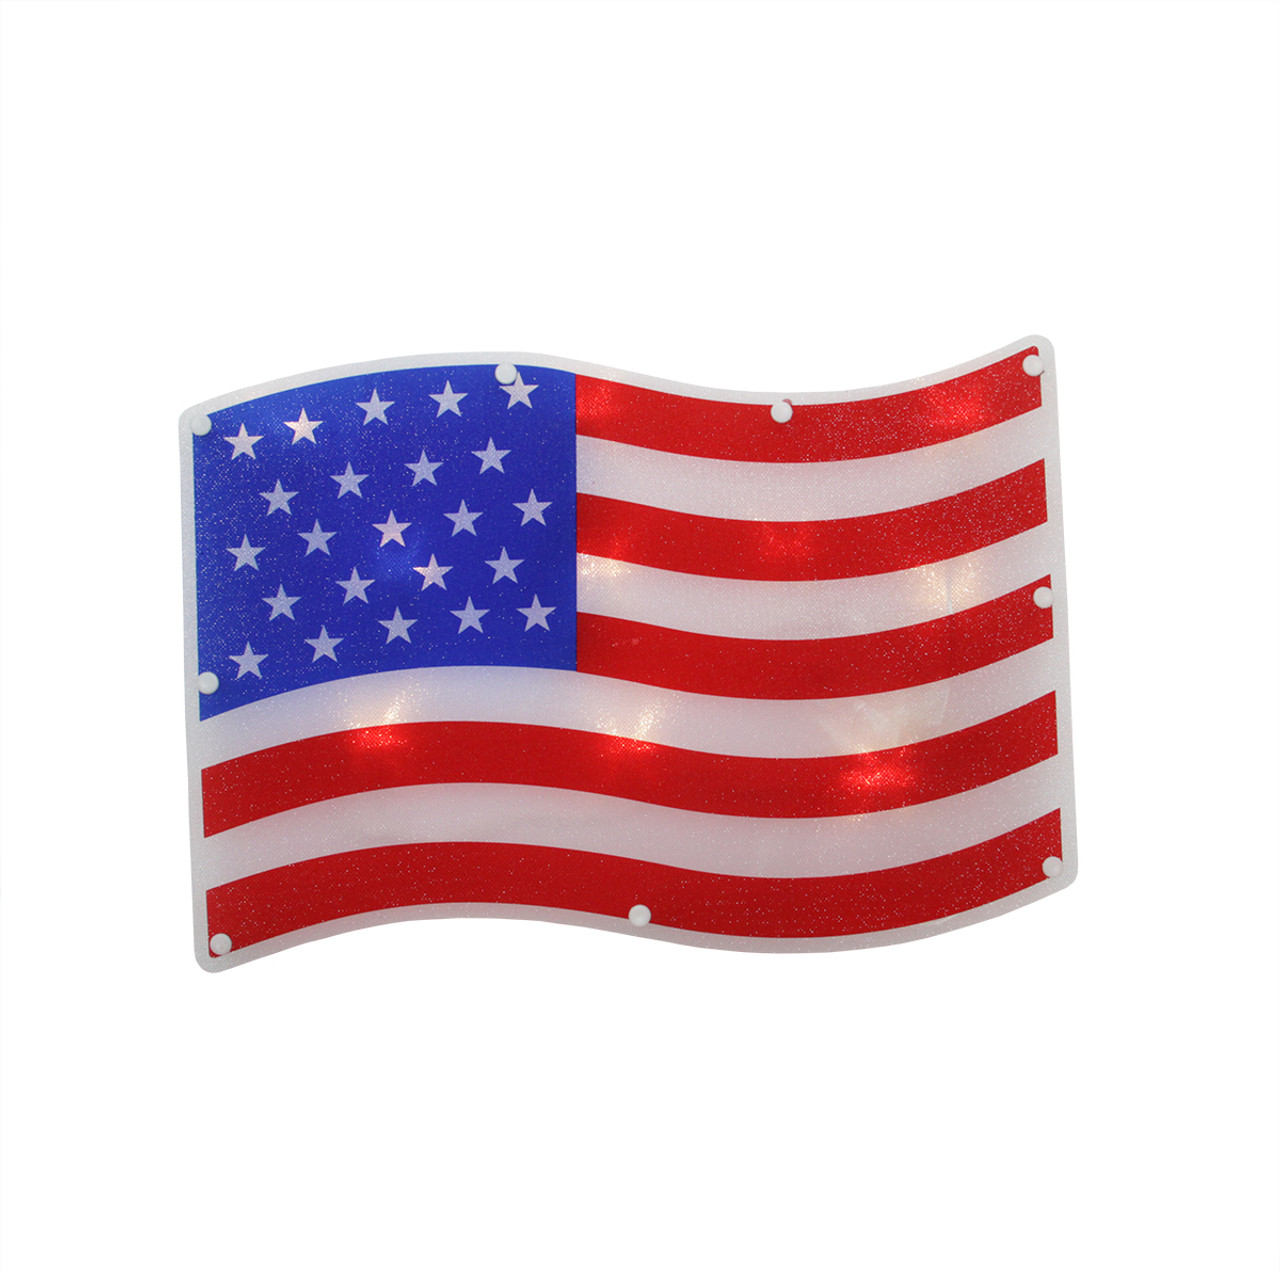 1325 Led Lighted Patriotic 4th Of July American Flag Window